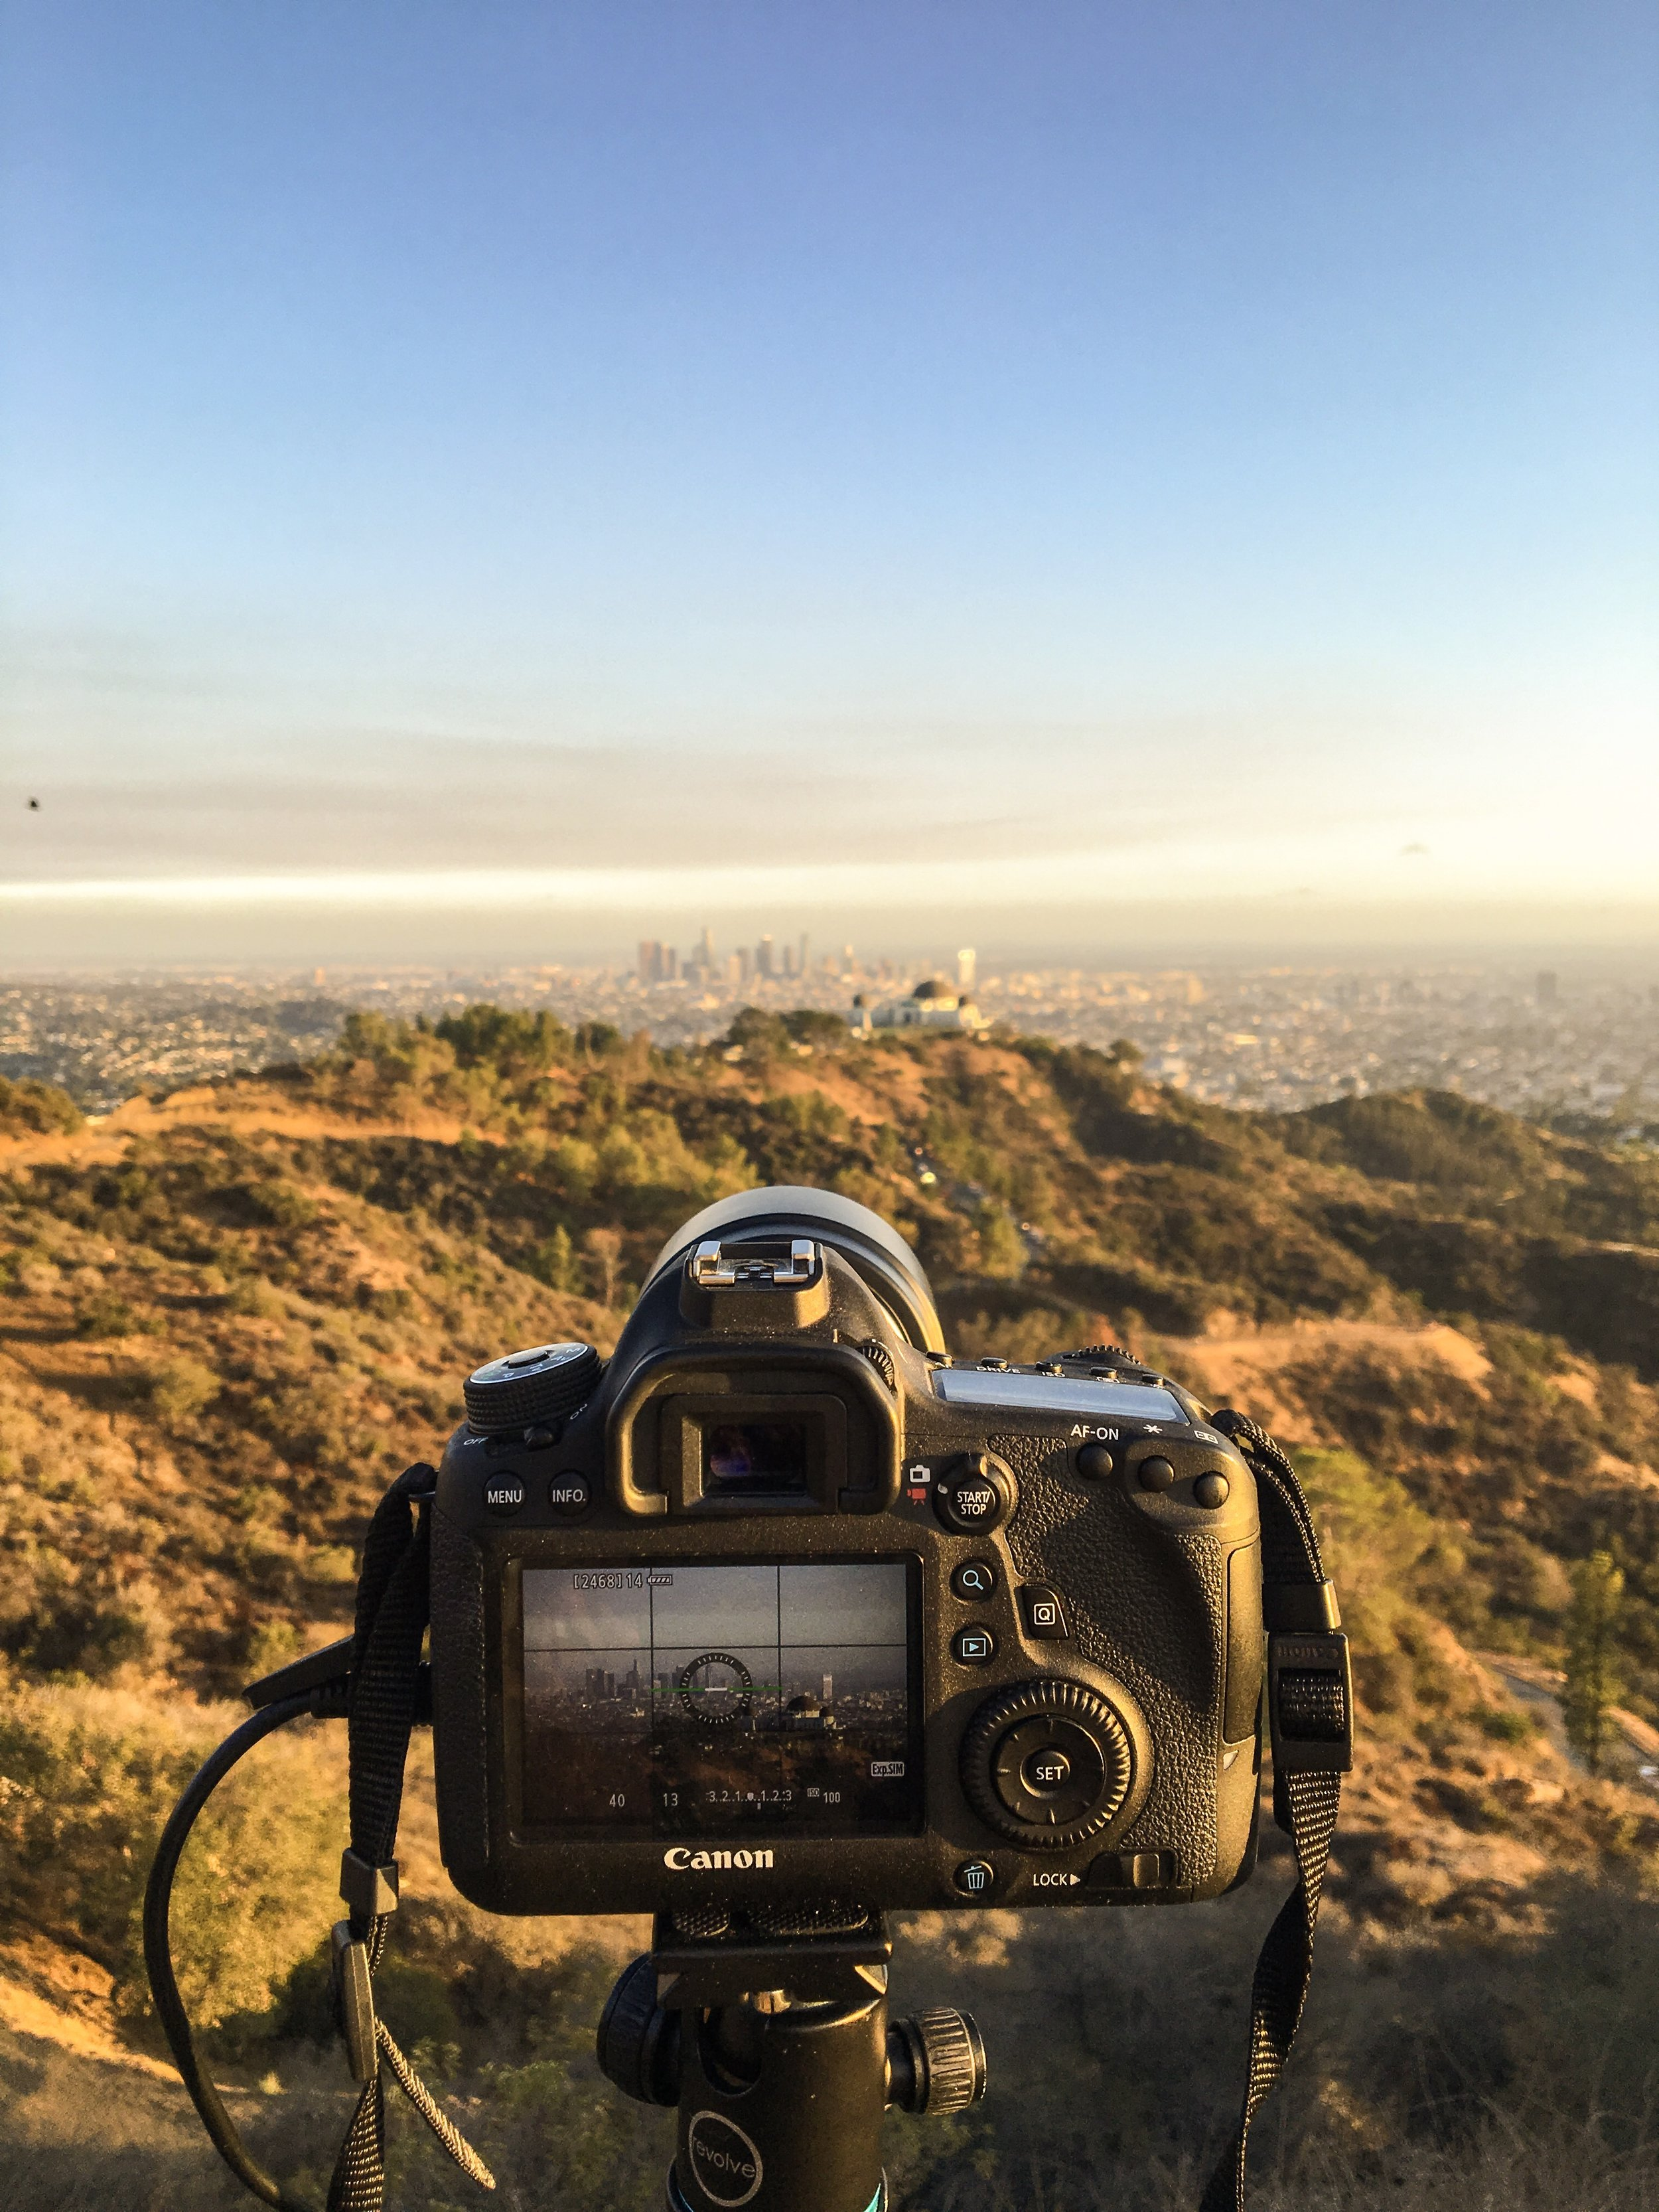 Shooting Holy Grail timelapse from Griffith Park, California.